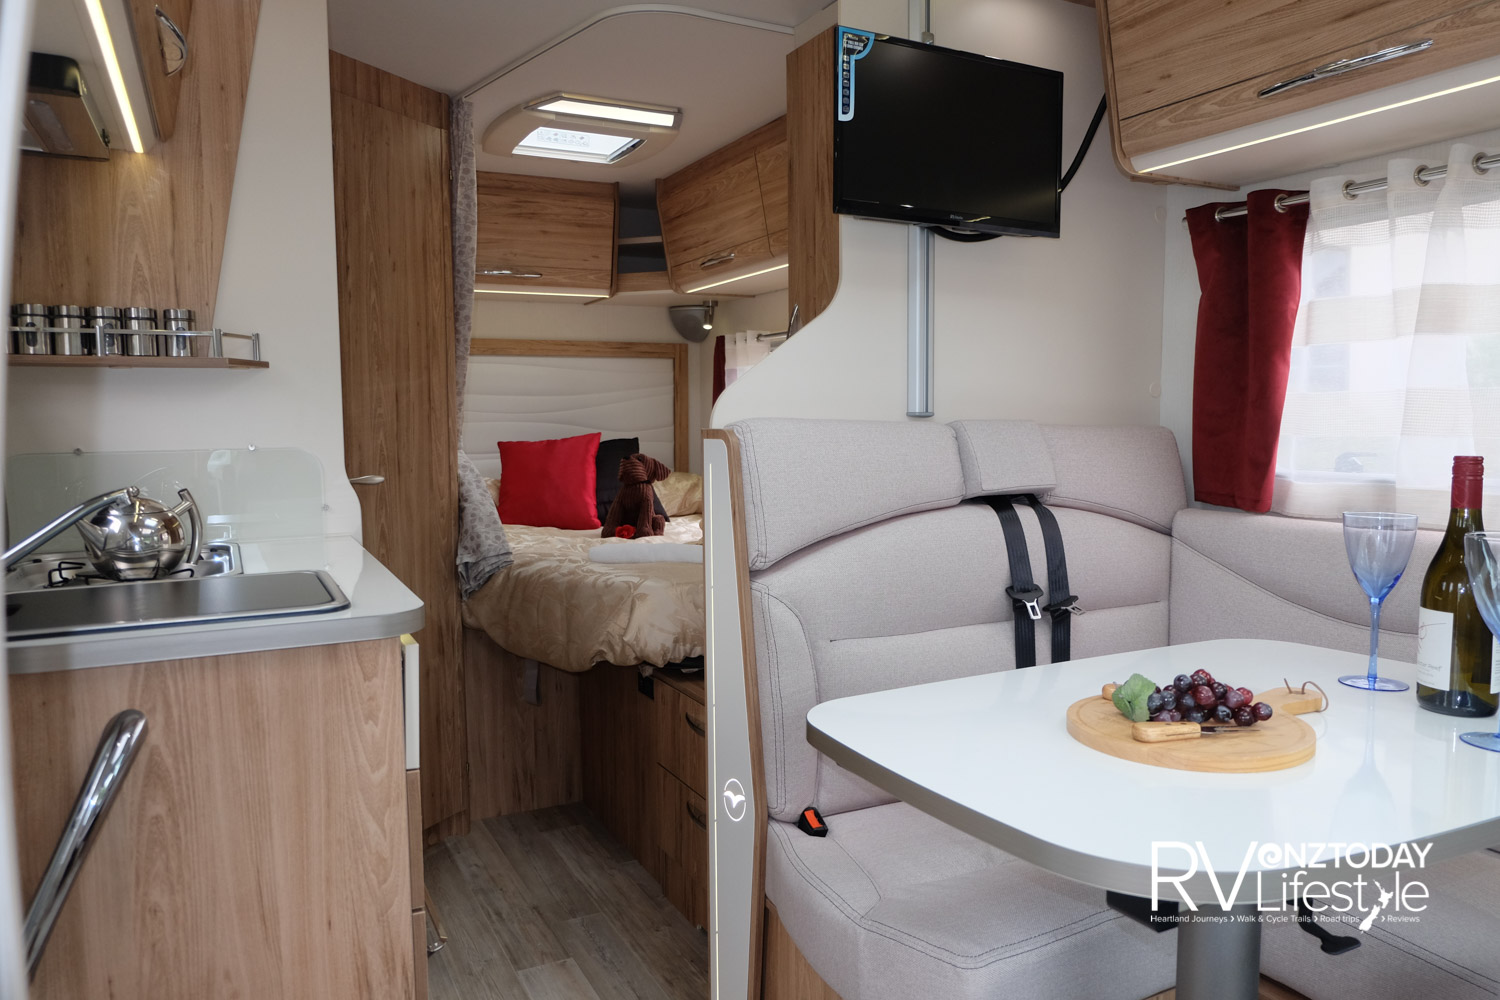 Seatbelts for two passengers, the TV is on a height-adjustable rail, overhead locker storage here and through to the bedroom area, with wardrobe between the spaces. Side and net curtains add a homely feel to the windows, though they have pull-up blinds and fly screens on all windows